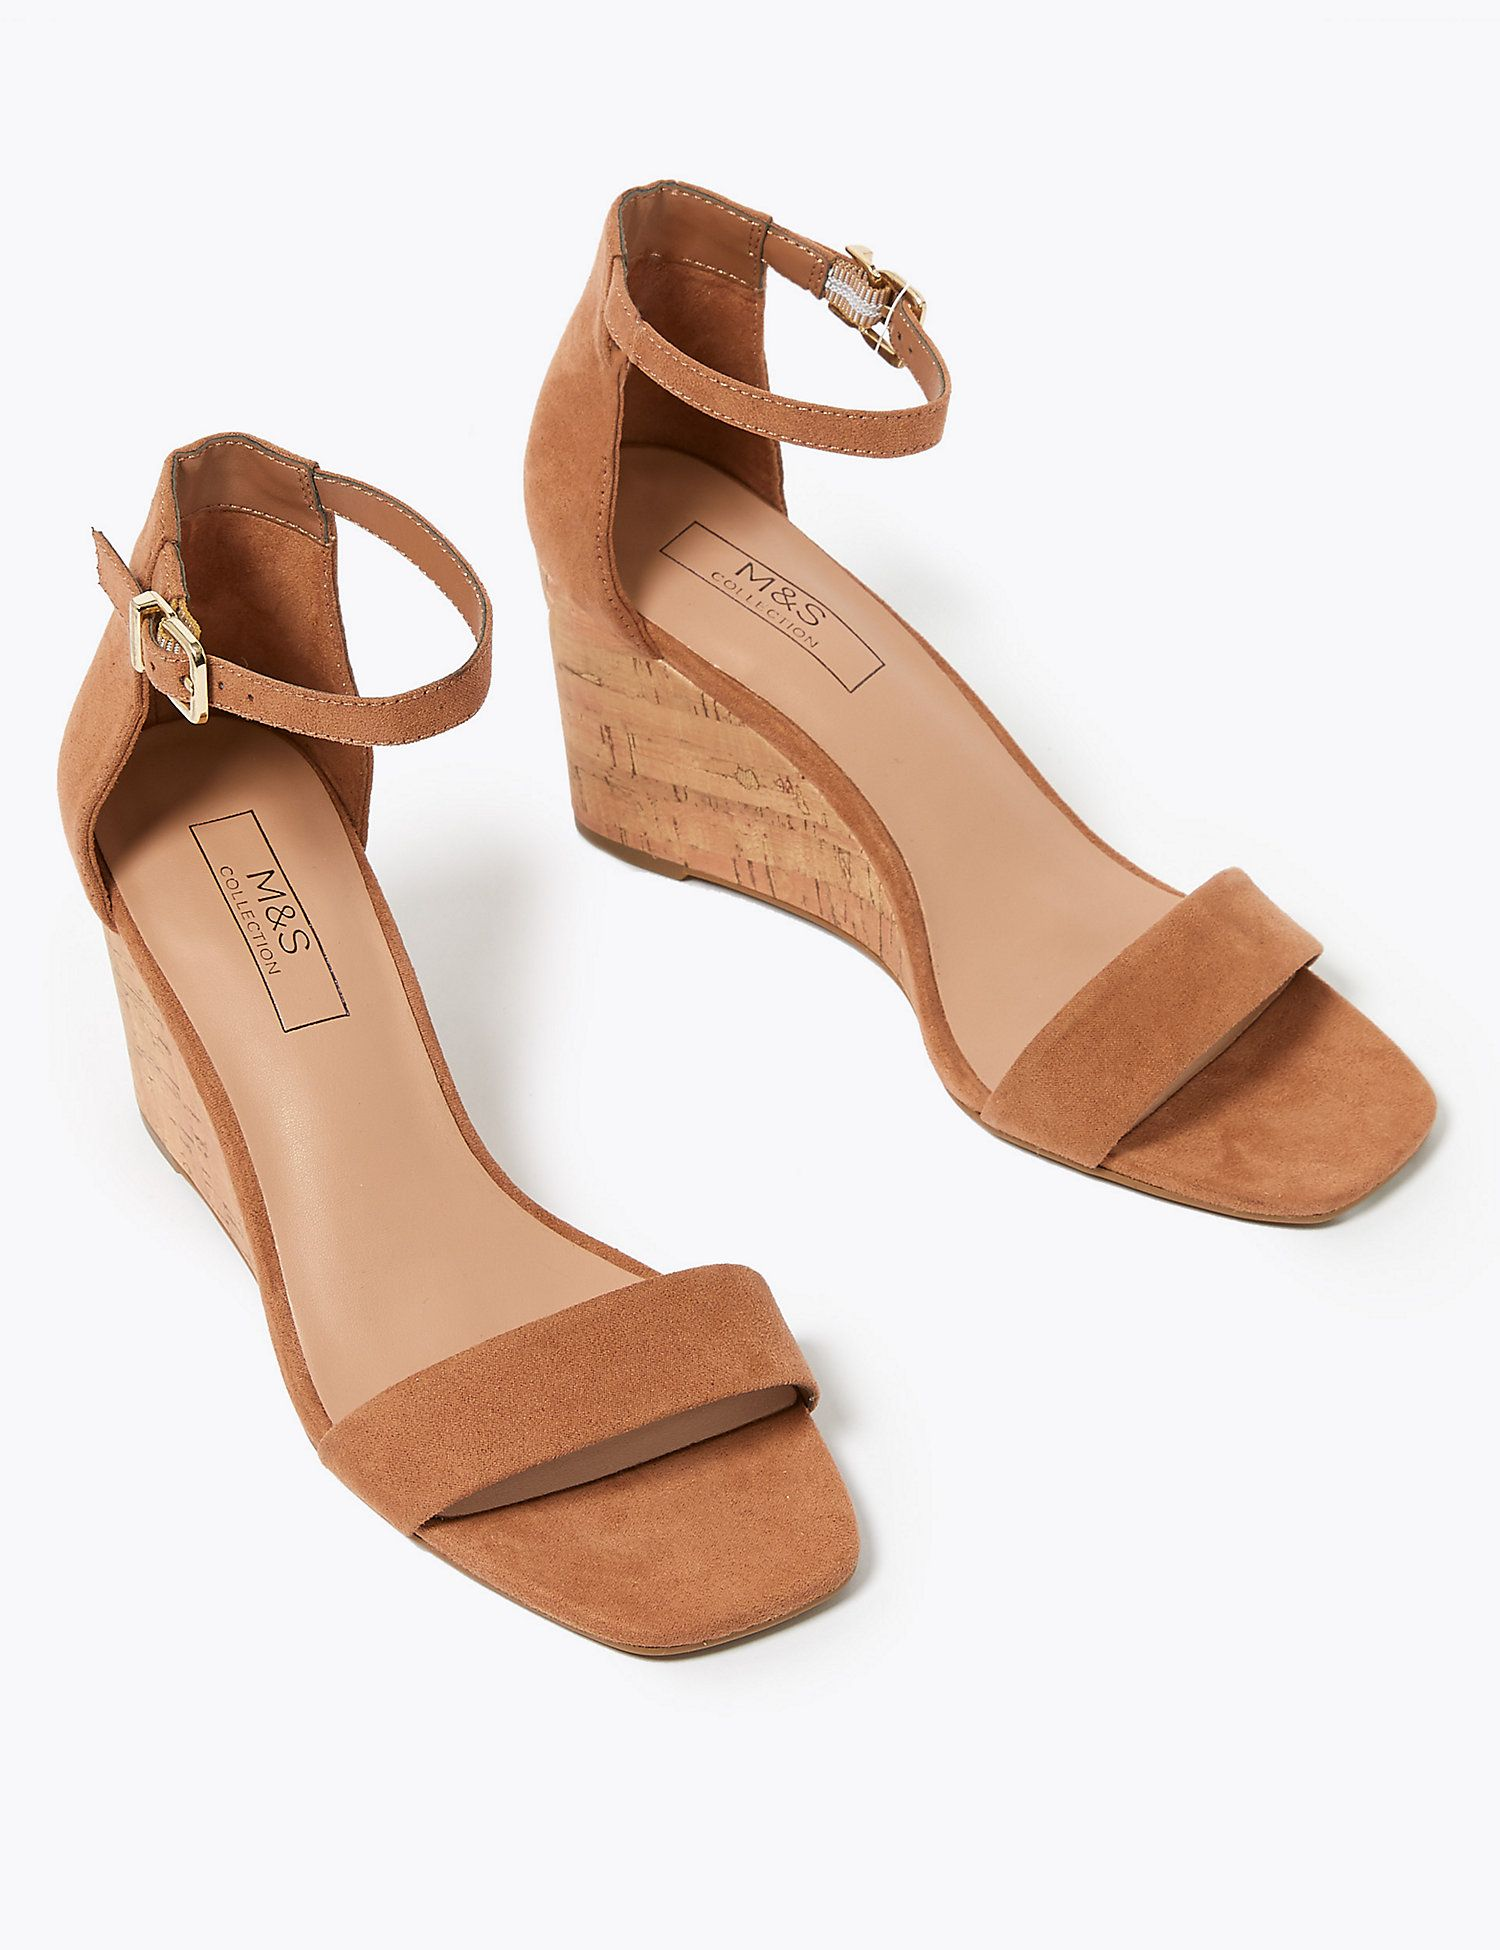 Wedge sandals, Ankle strap wedges, Wedges